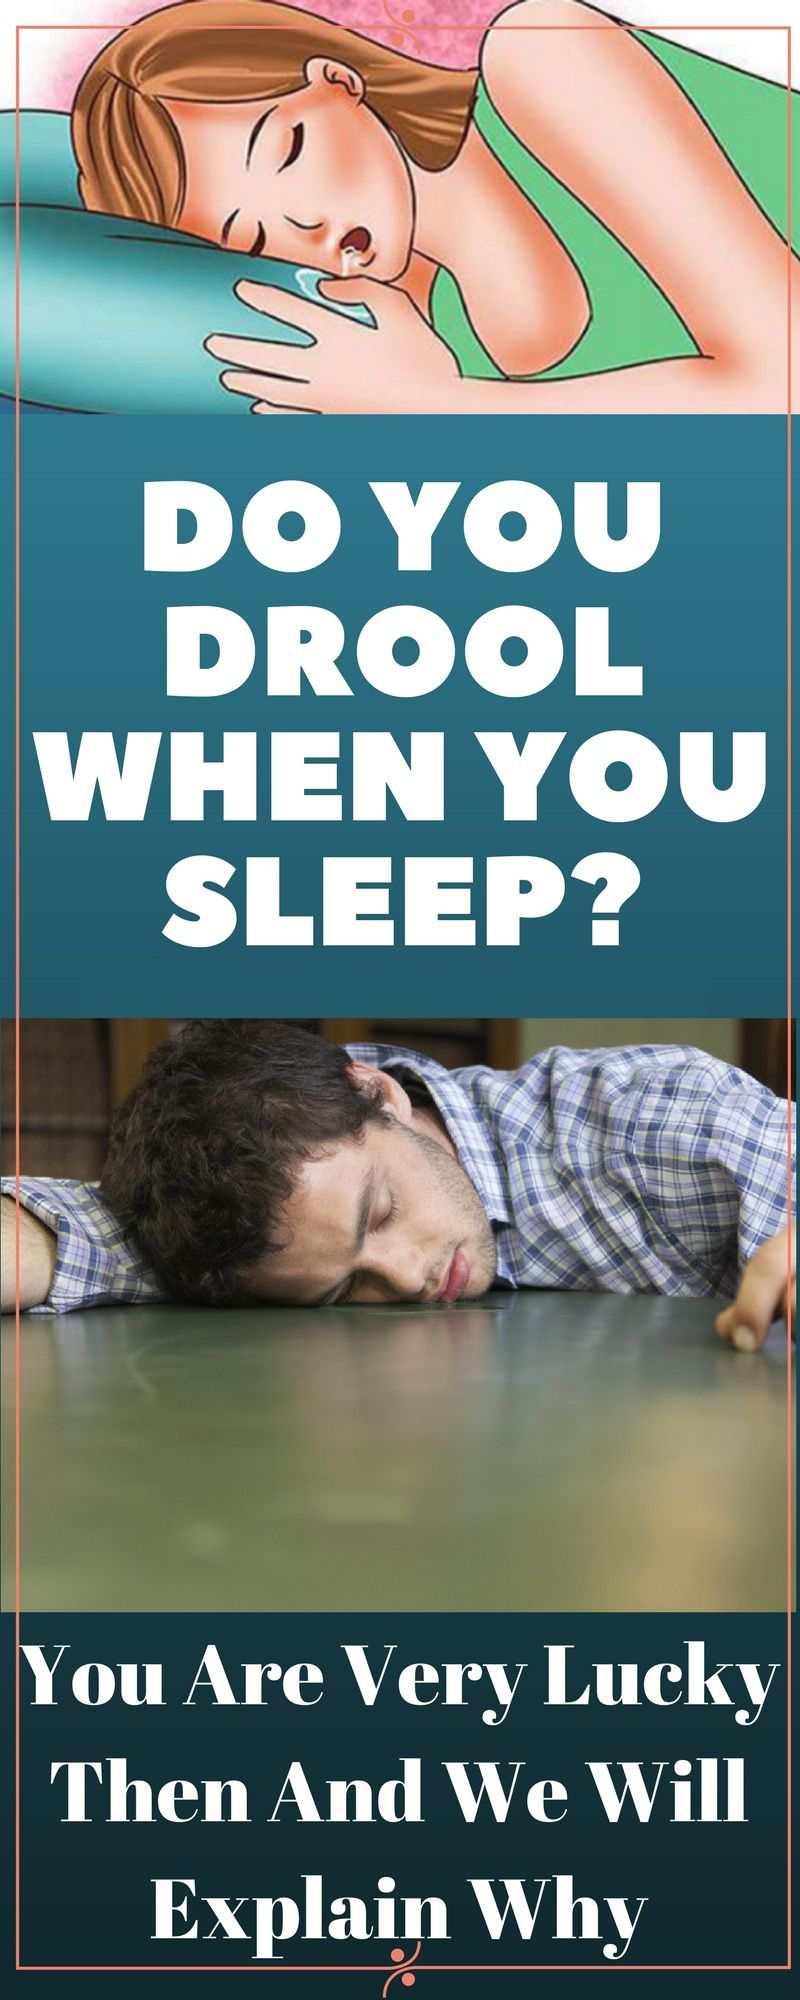 what does it mean when you drool while you sleep